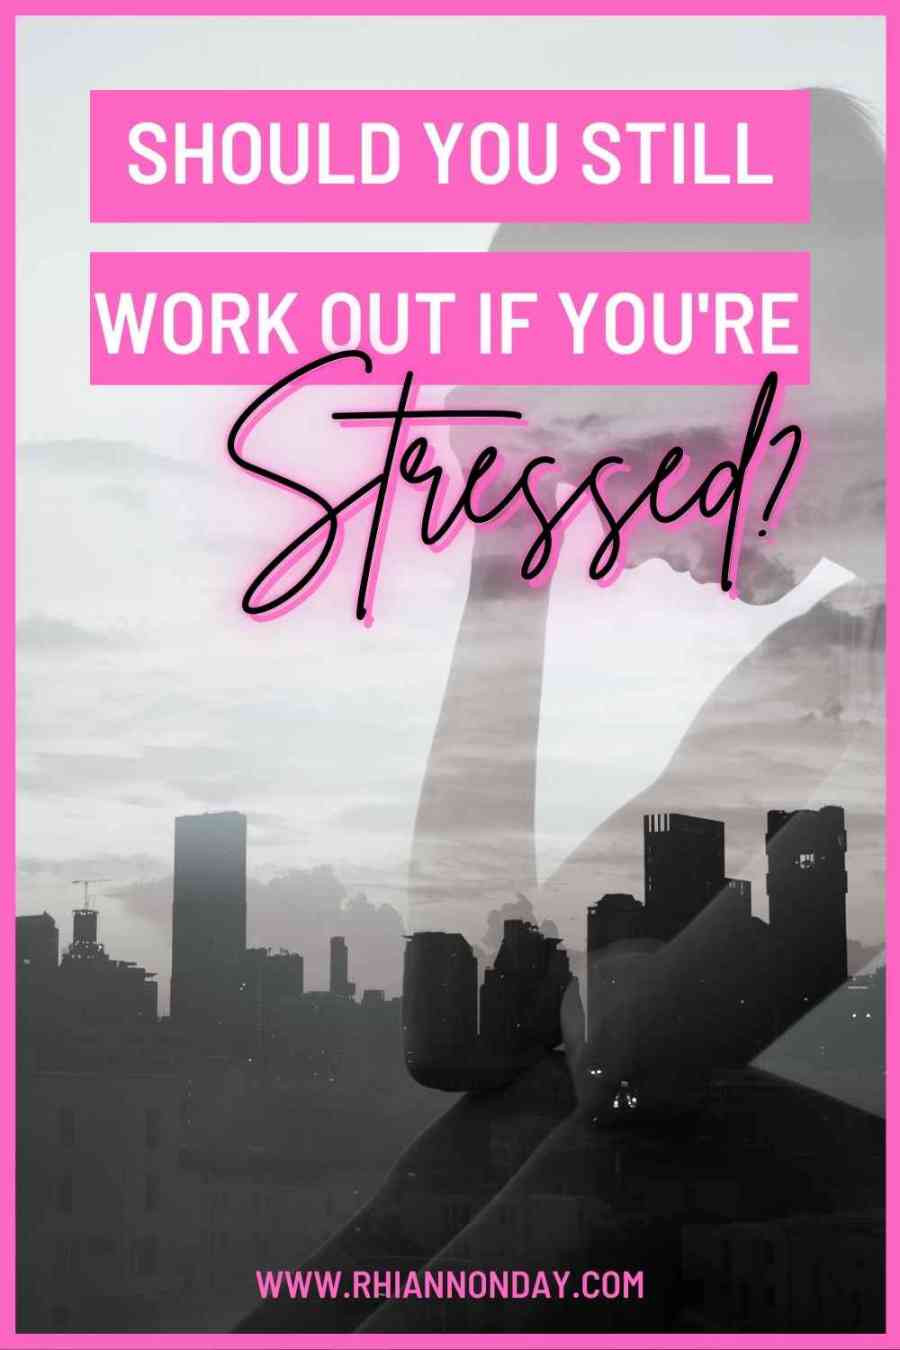 Stressed out and wondering if you should still hit the gym?  The answer may surprise you ... #fitnesstips #healthandfitness #fitnessjourney